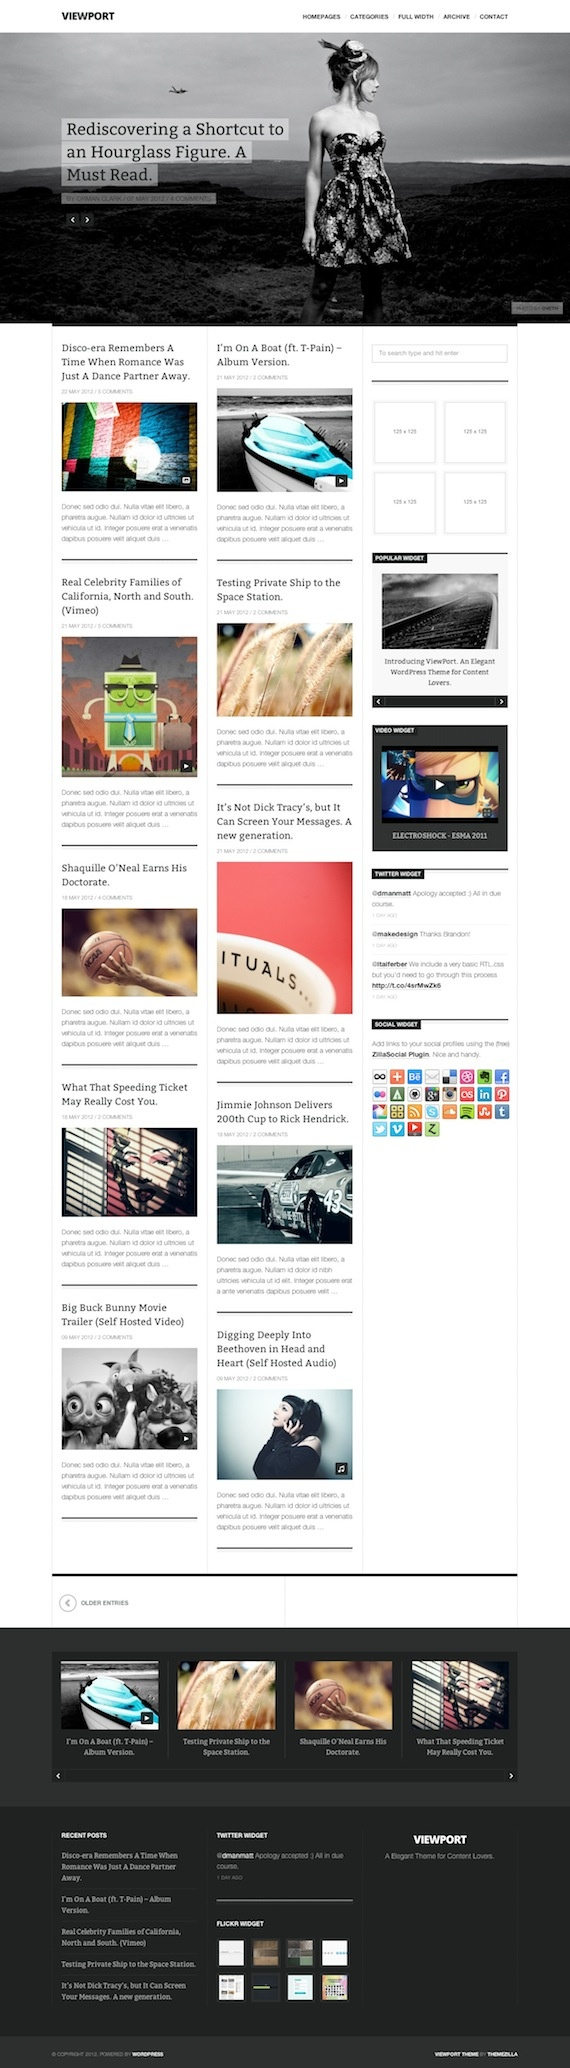 A clean and elegant WordPress theme for blogs and magazines by Themezilla founder Orman Clark.